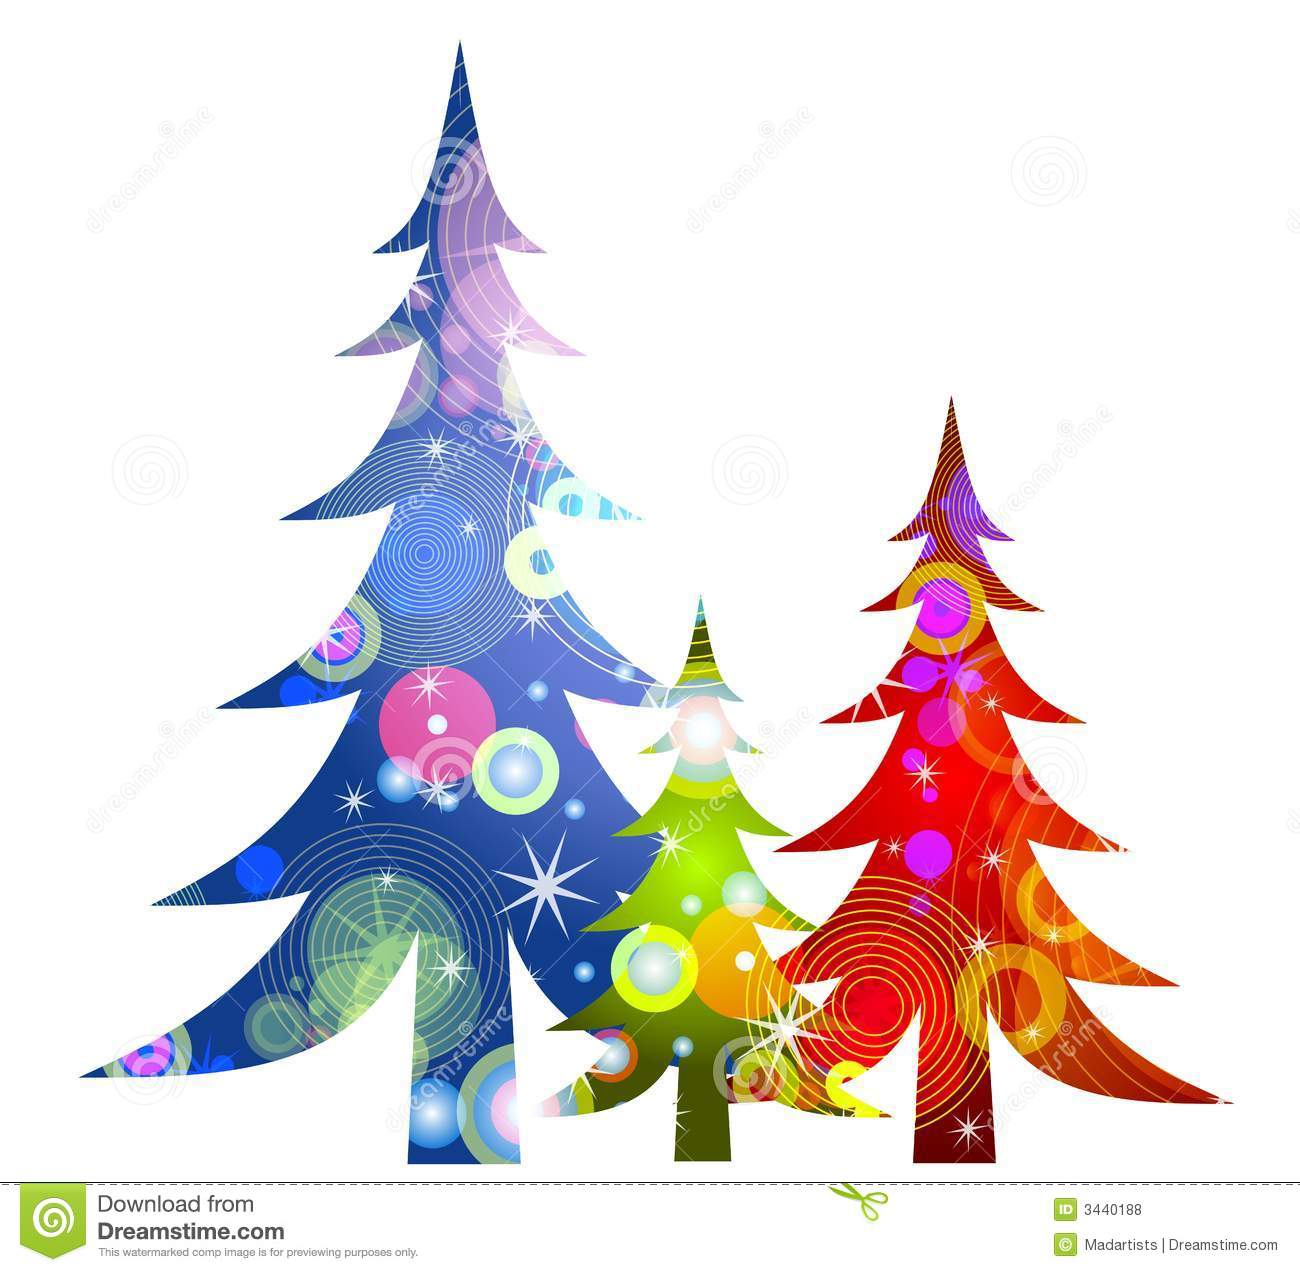 529 Christmas Trees free clipart.